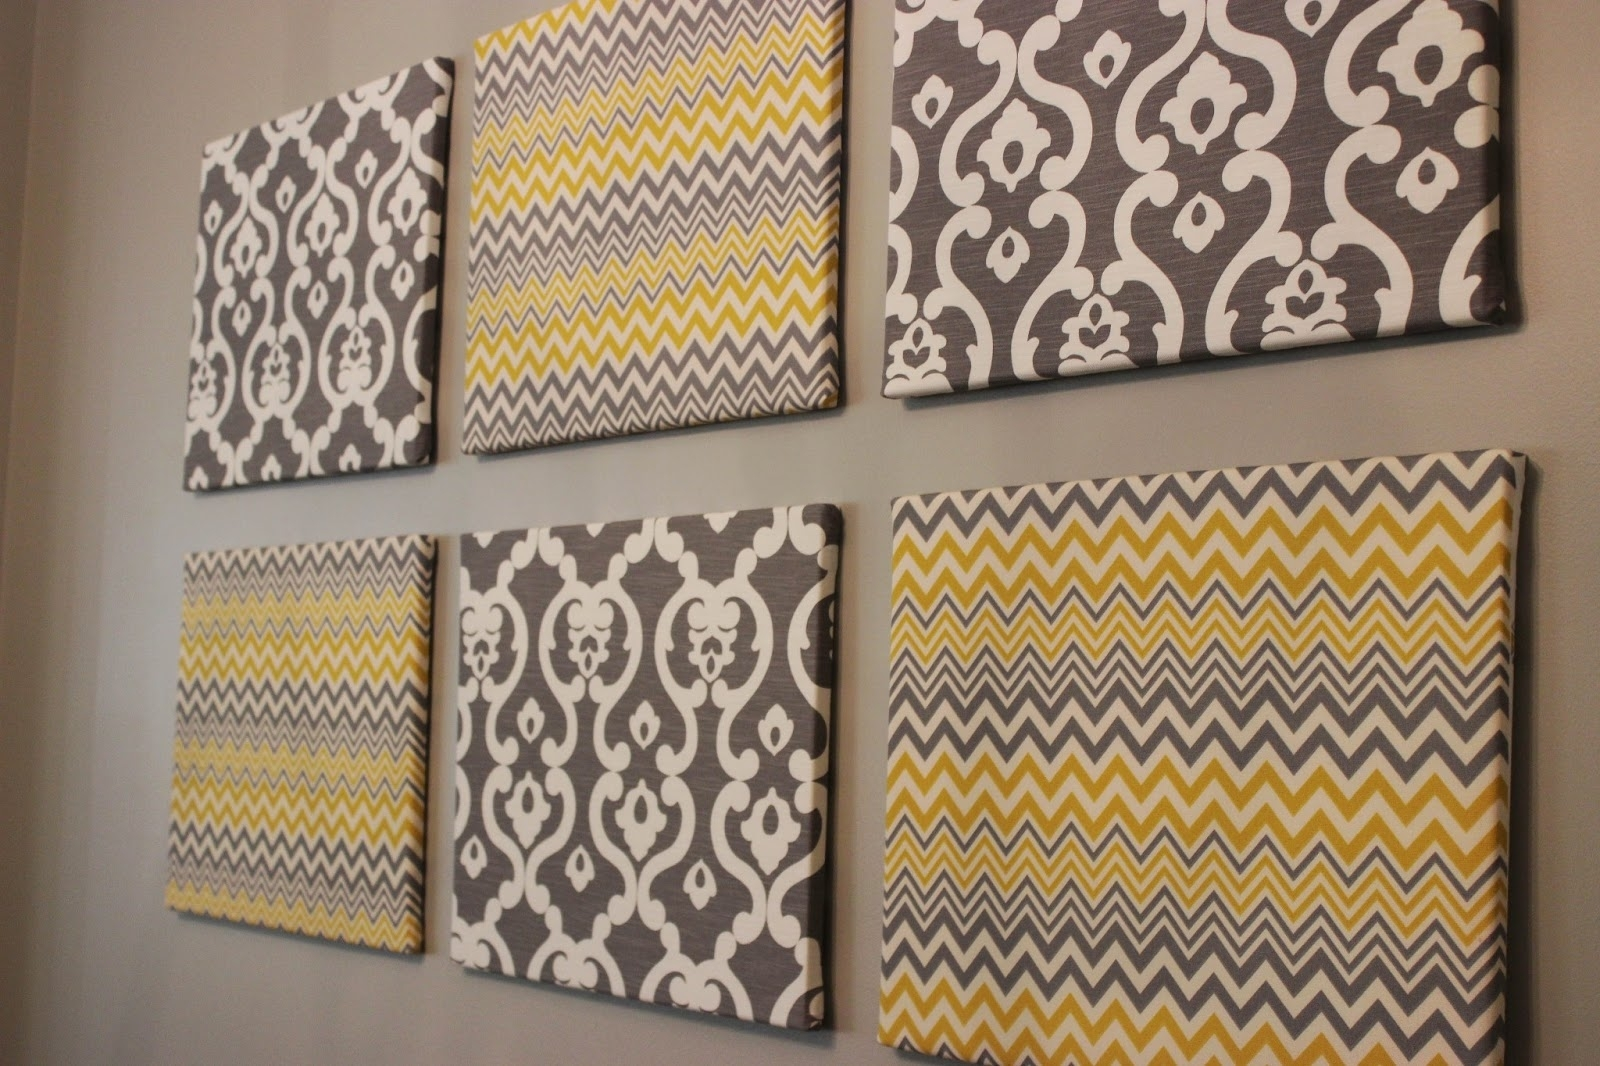 Art: Canvas Wall Art Diy Within Most Recent Fabric Butterfly Wall Art (View 3 of 15)